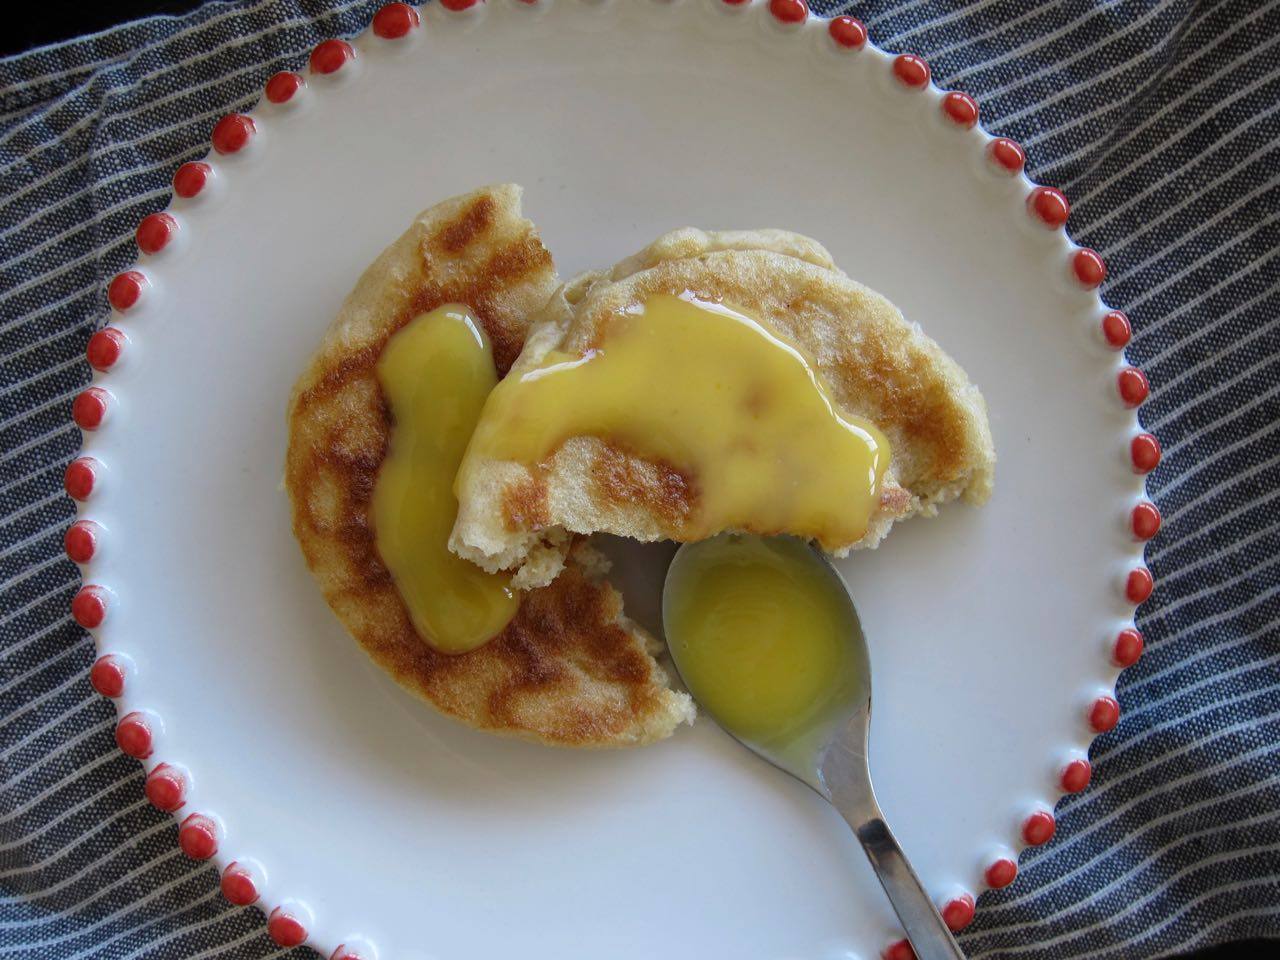 crumpet with curd